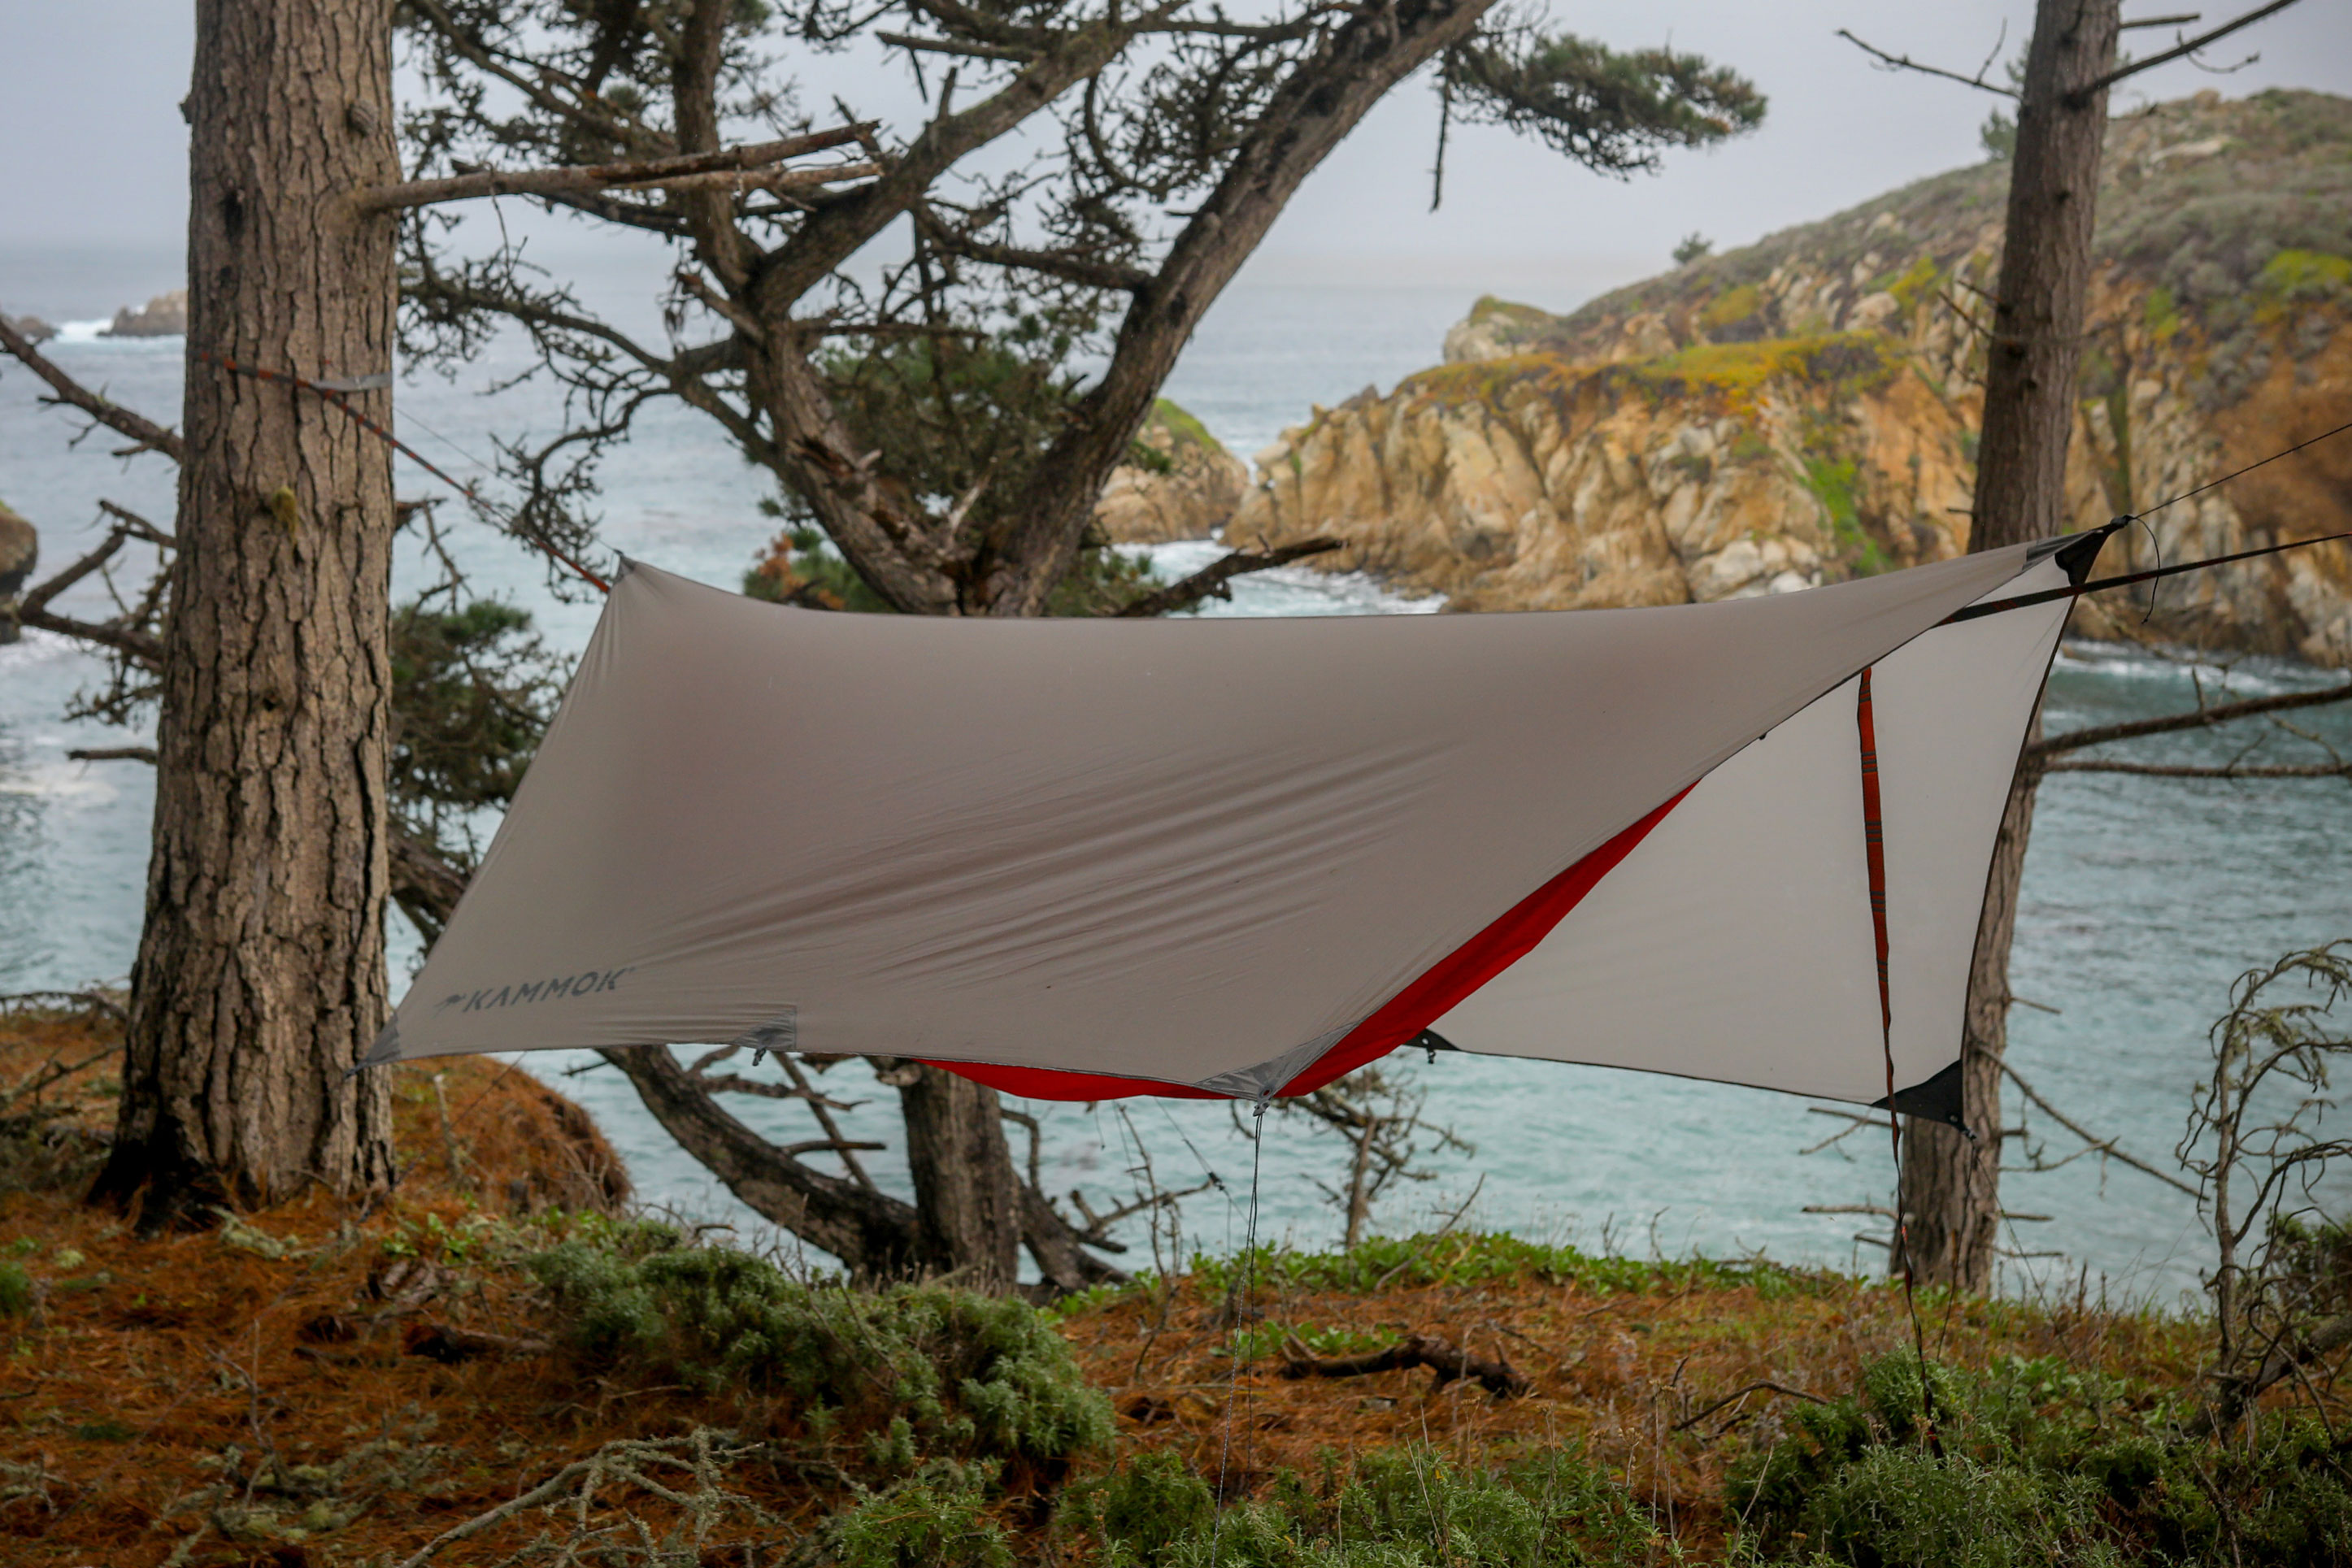 Kammock Mantis all-in-one hammock system